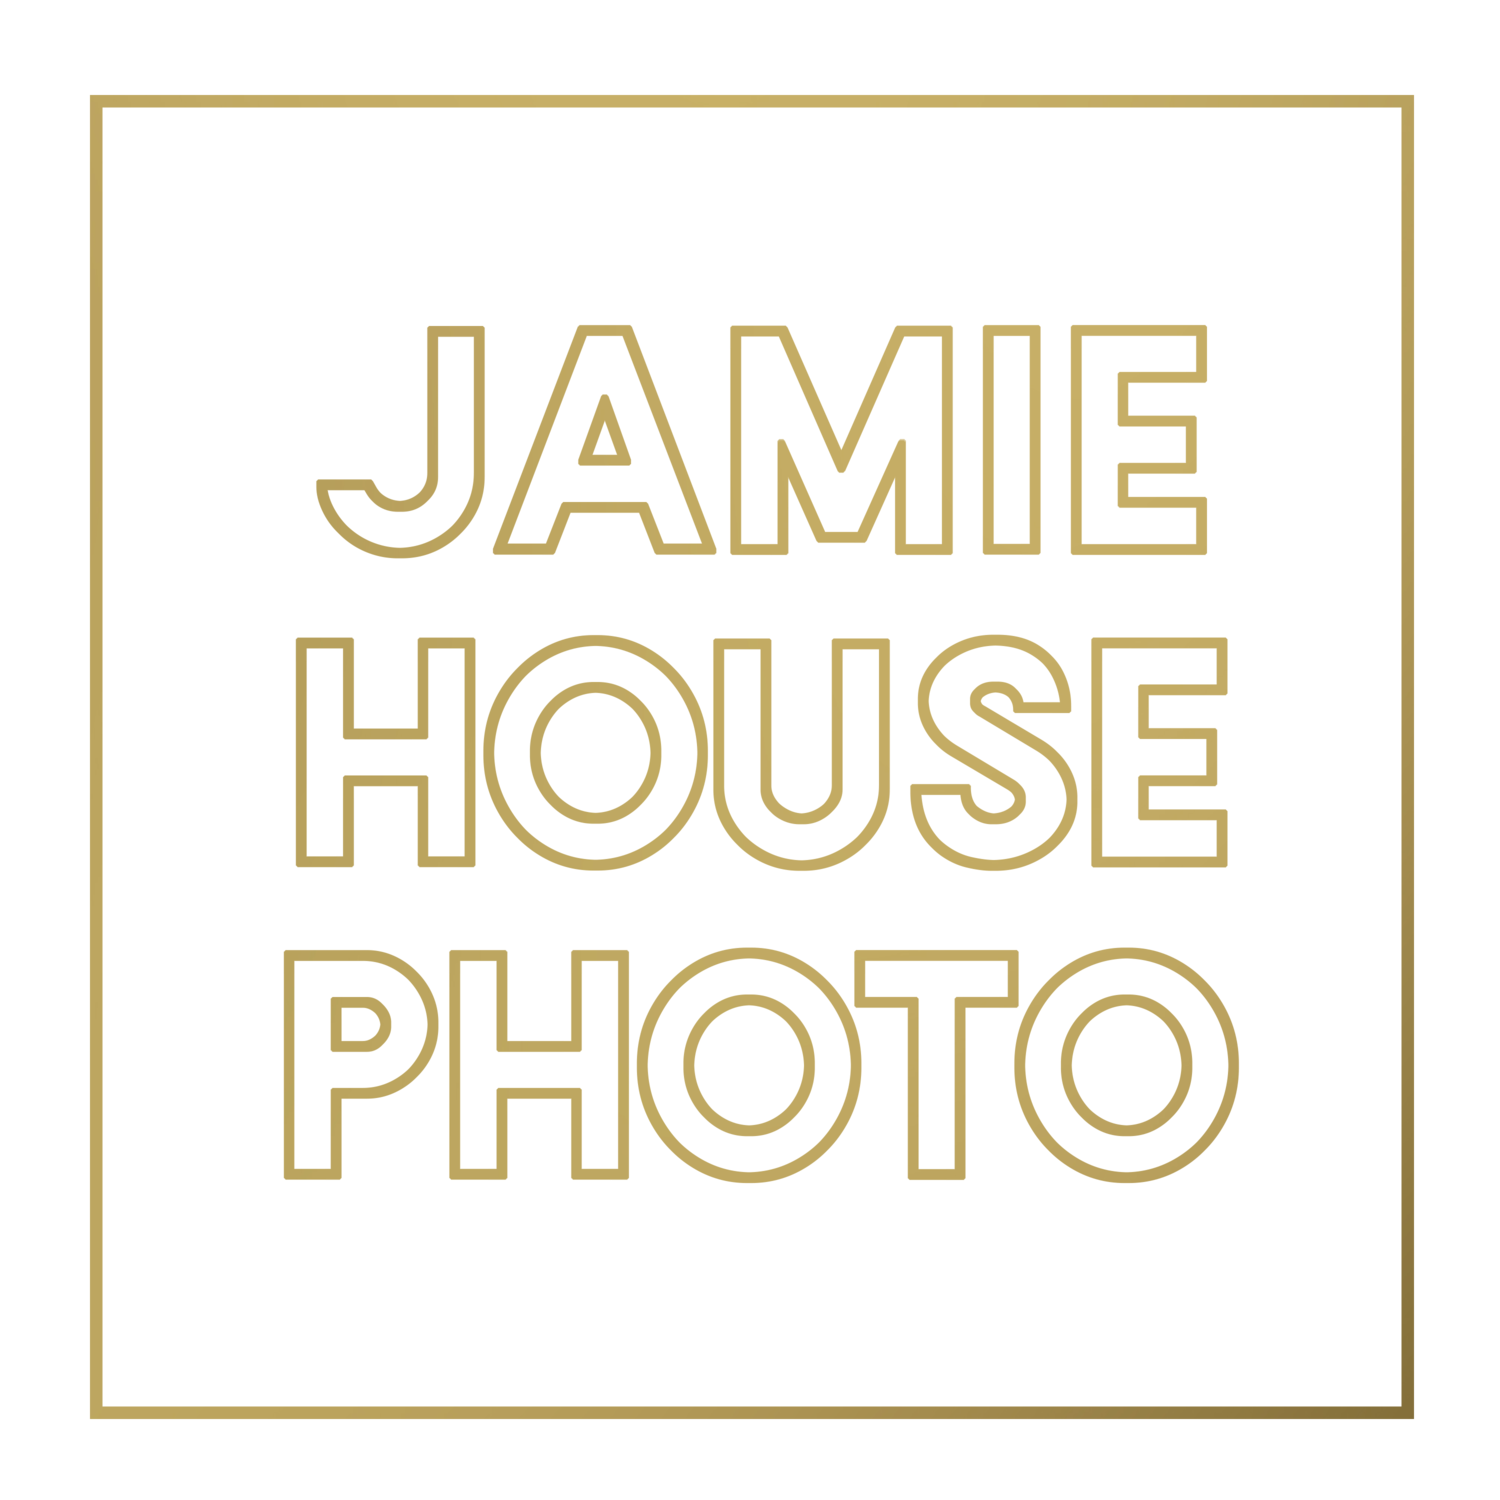 Jamie House Photo